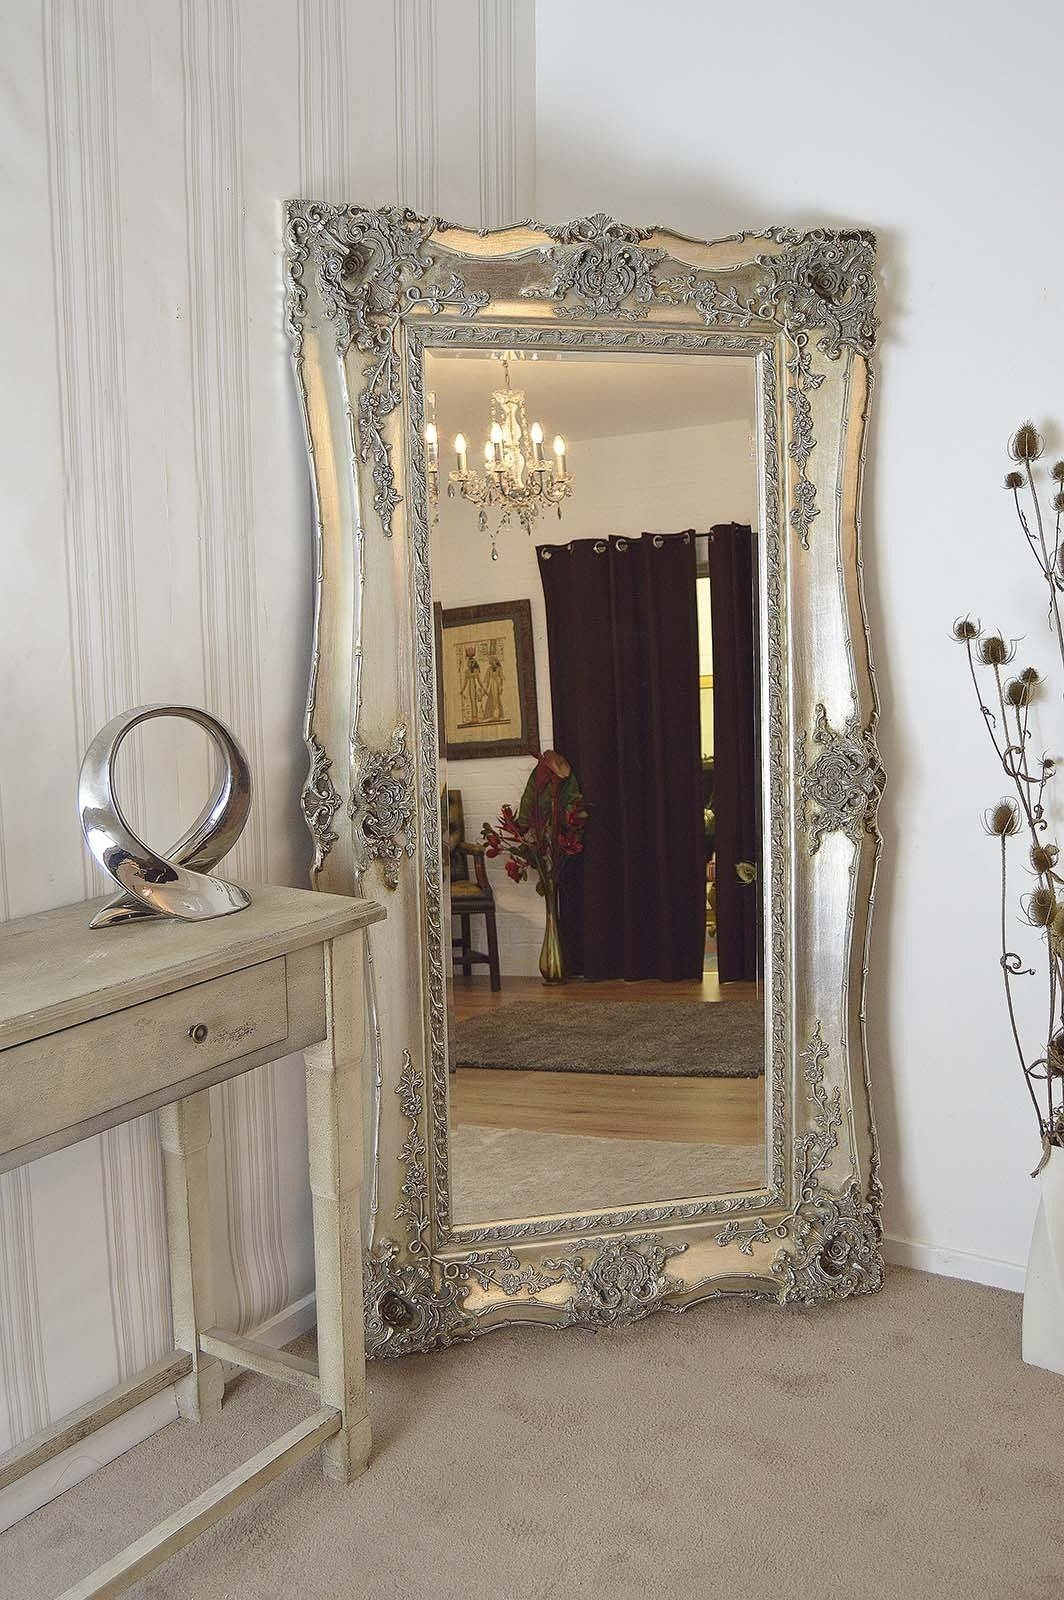 Homeware: Oval Full Length Standing Mirror | Large Floor Mirrors within Cheap Vintage Mirrors (Image 10 of 25)